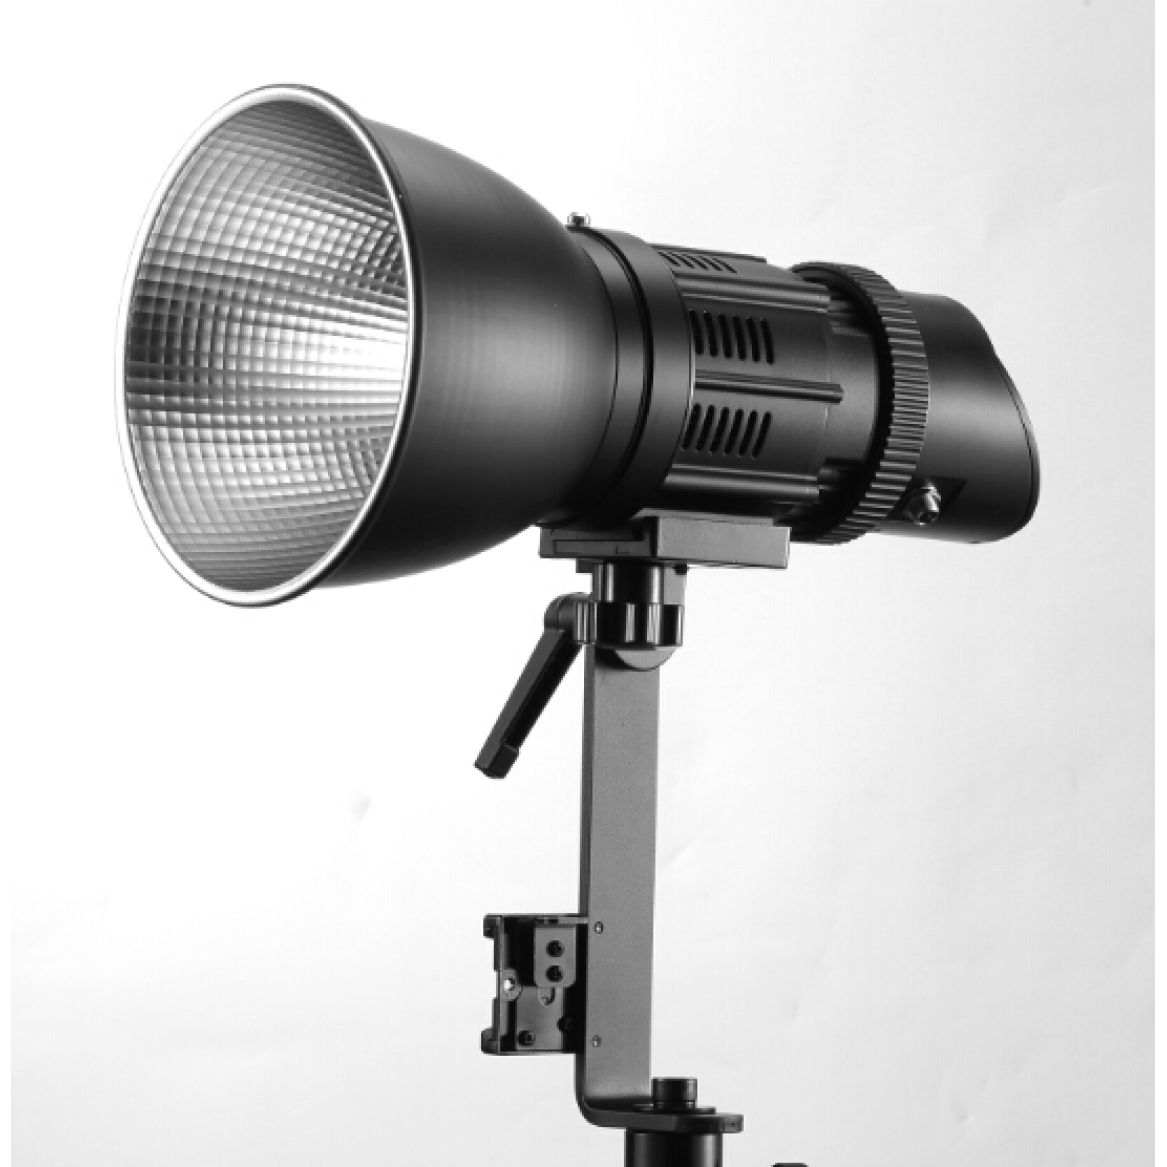 Focus 50D high brightness and color rendering index spotlight with remote control, different kinds of softbox and reflector